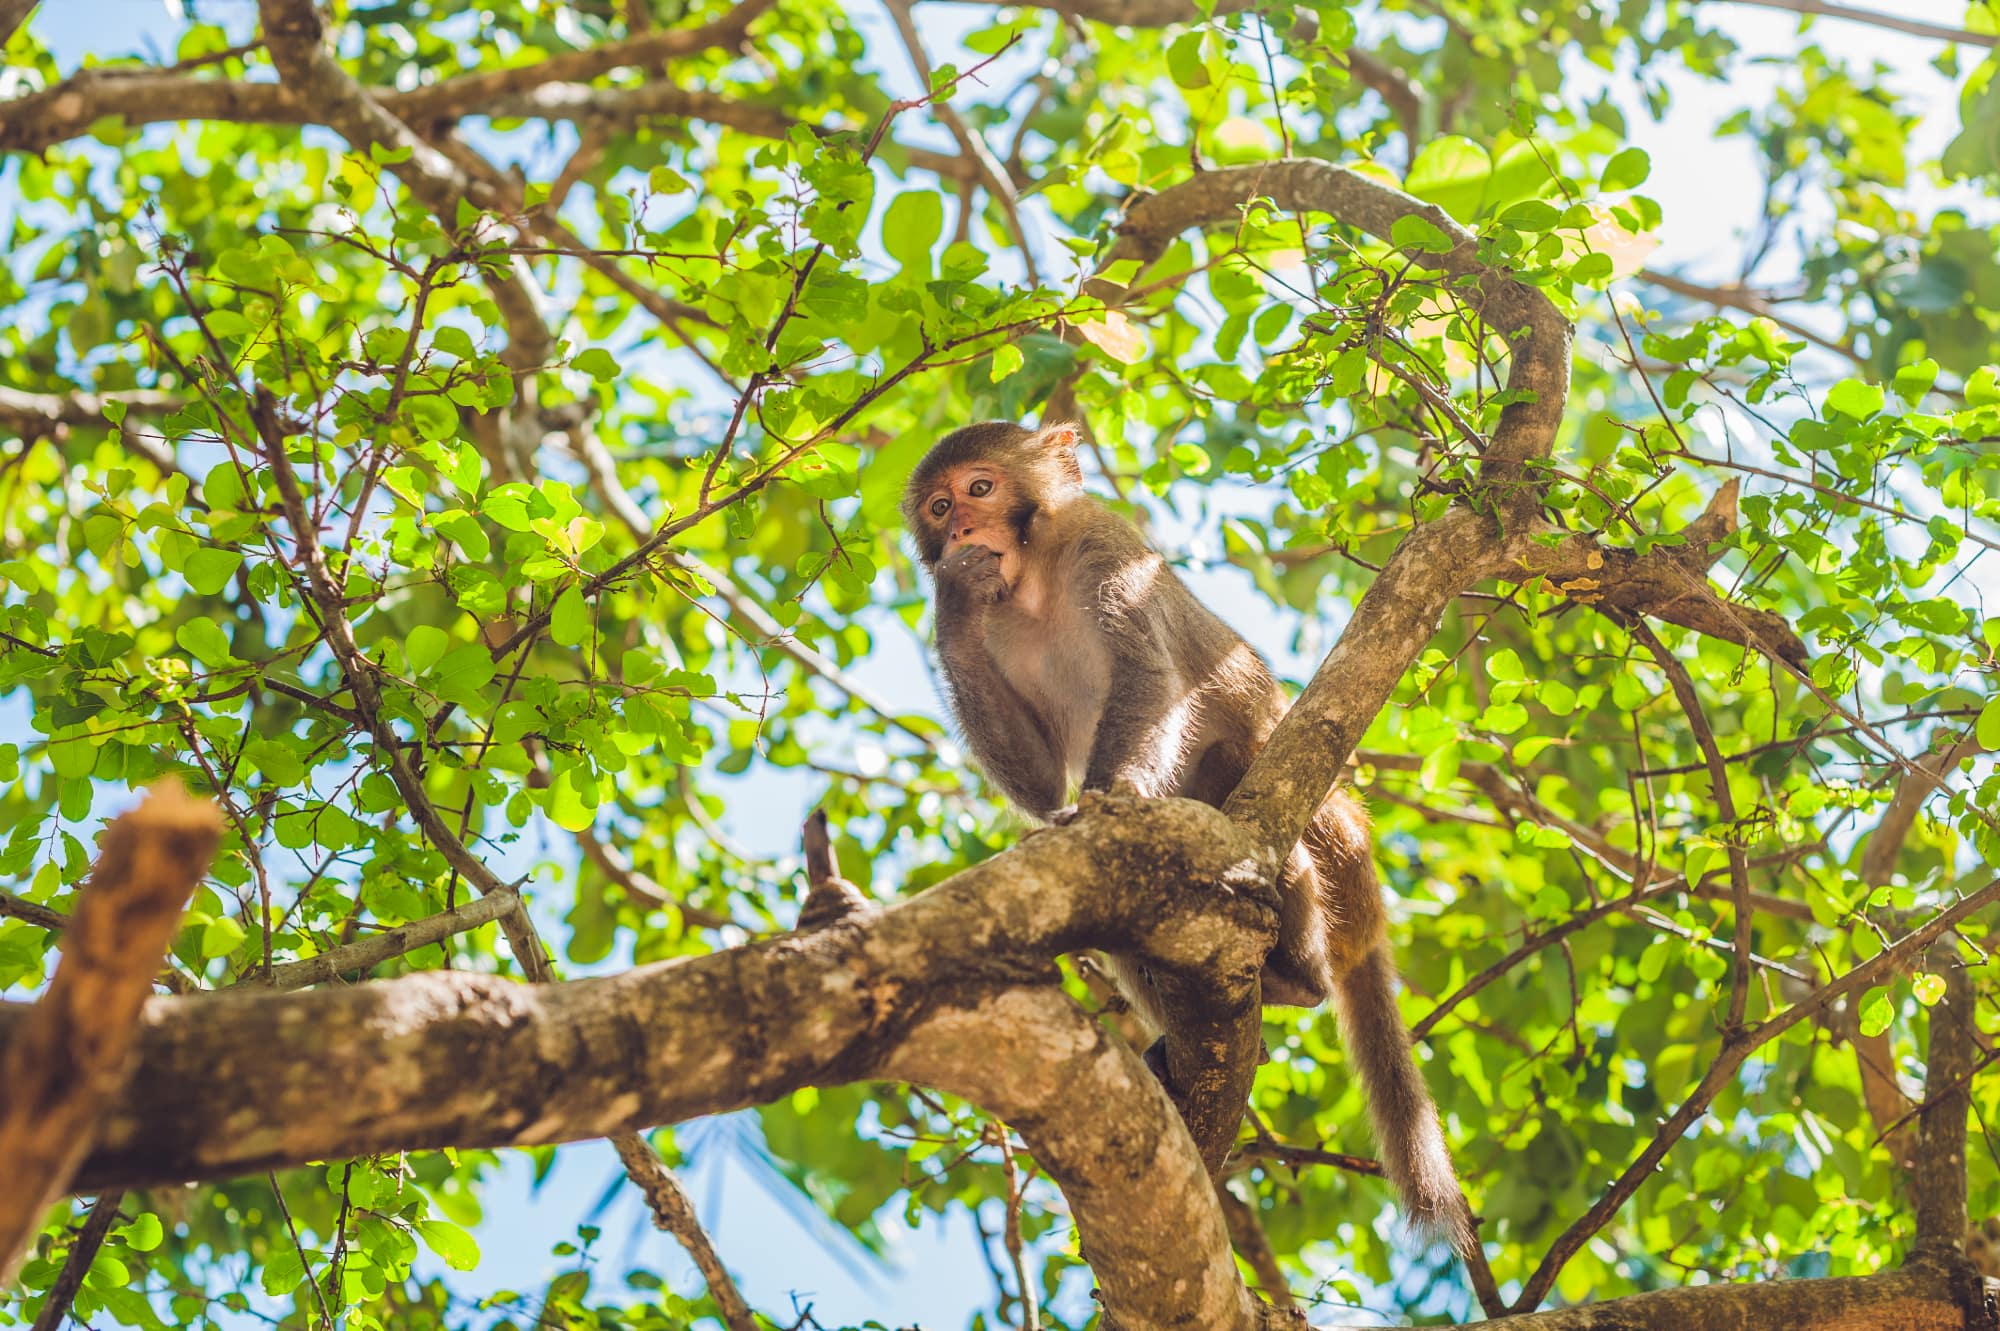 Rhesus macaque monkey sitting in tree covering its mouth